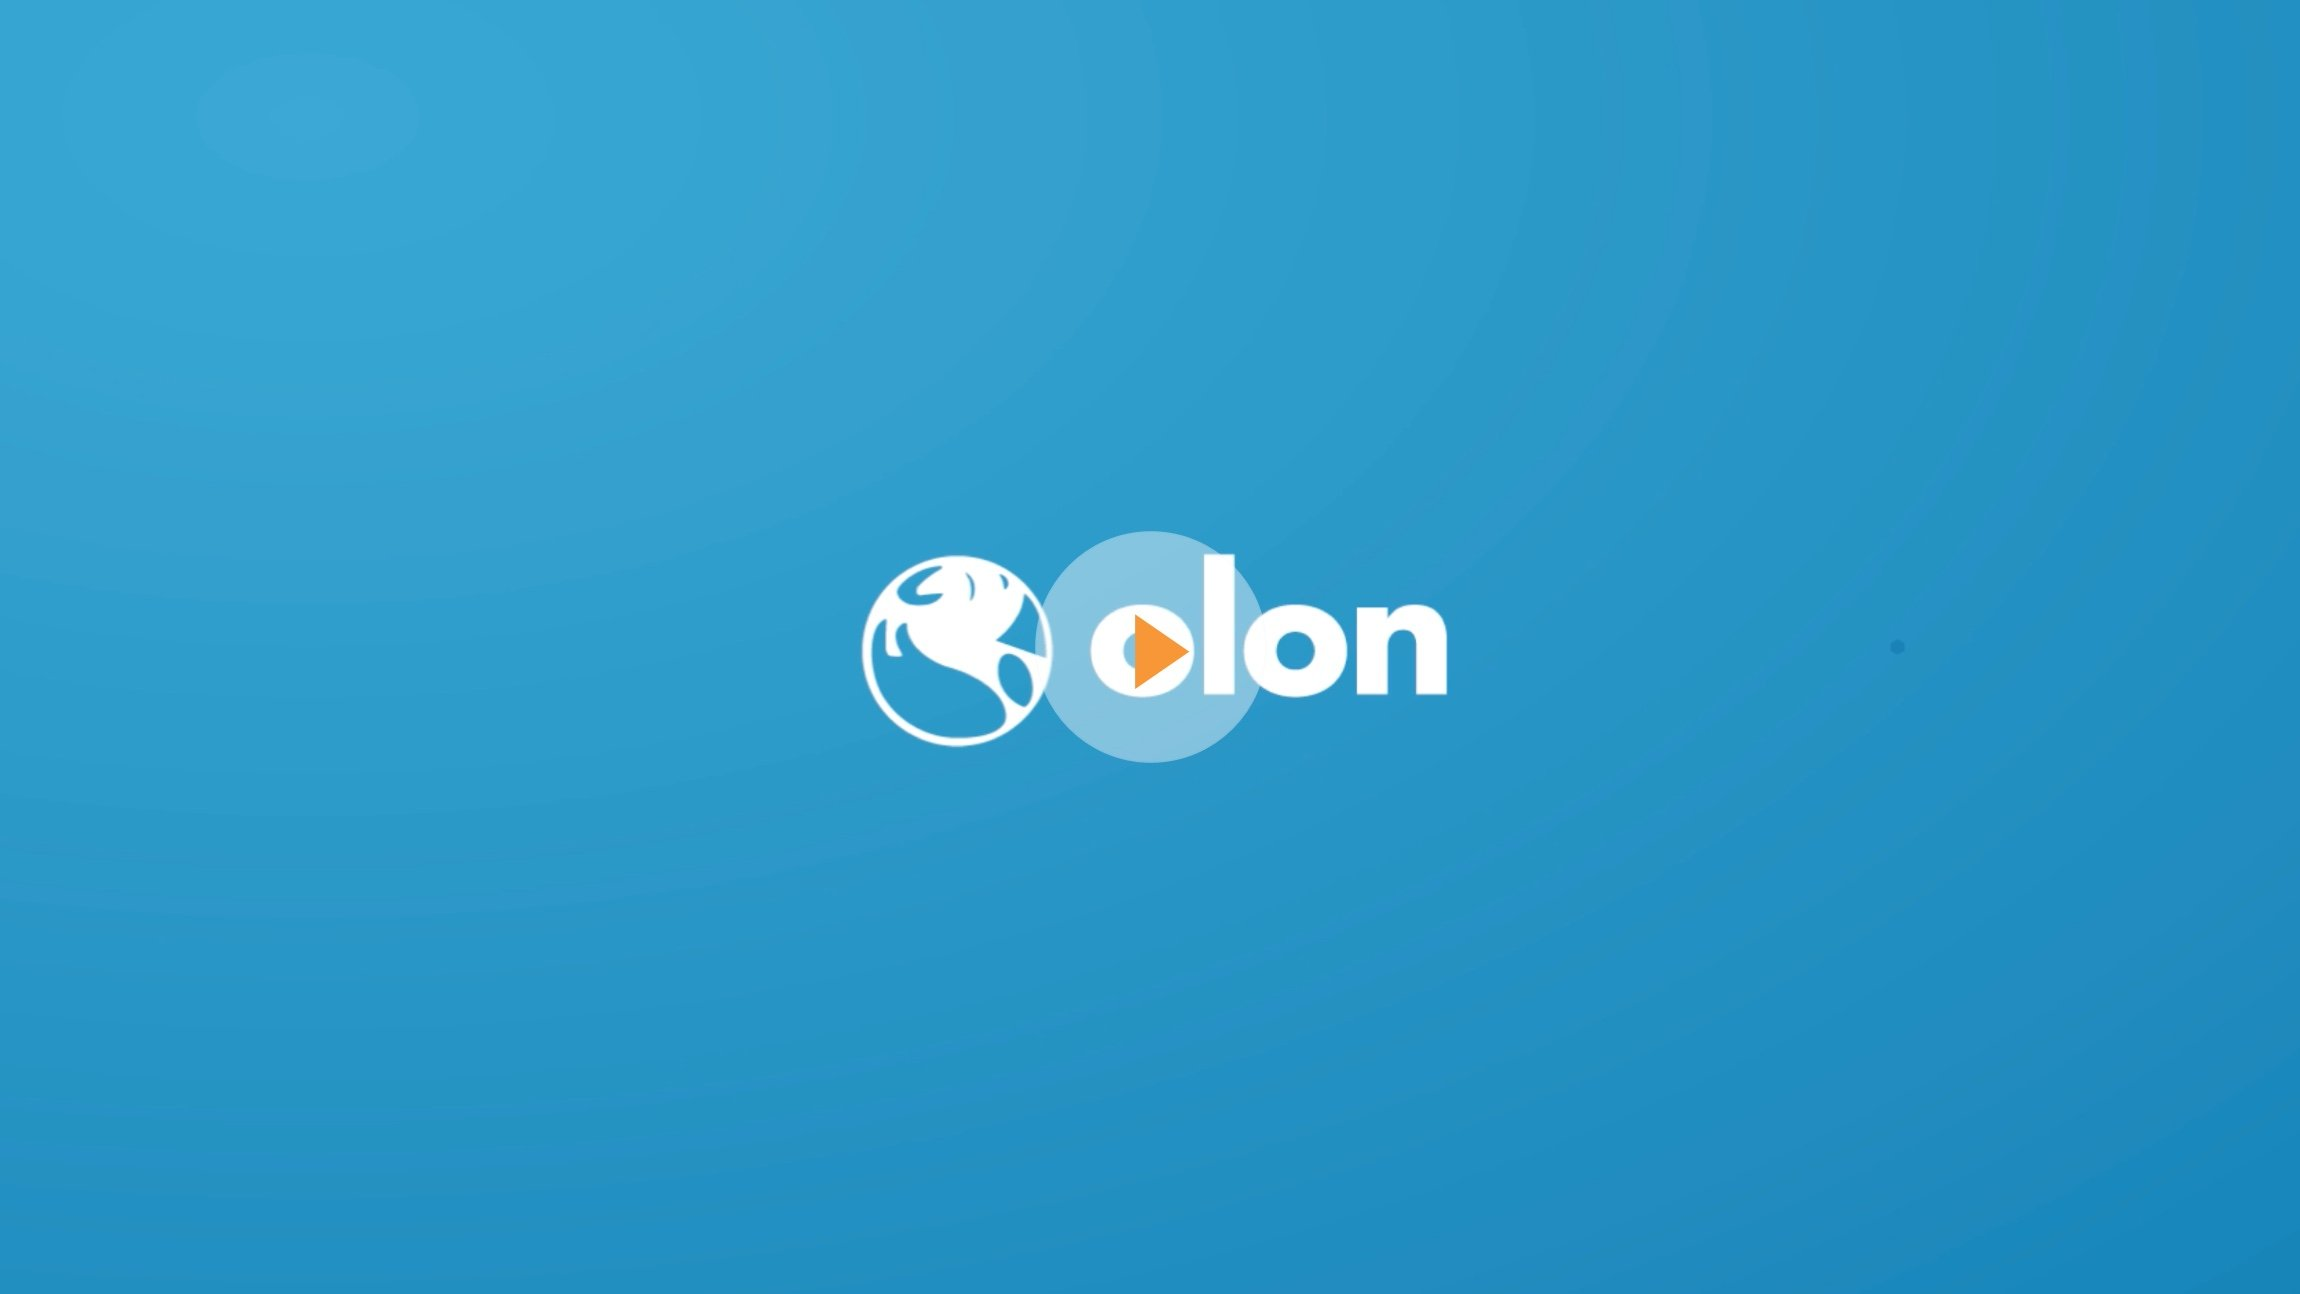 olon_vid_screen_1150x647@2x